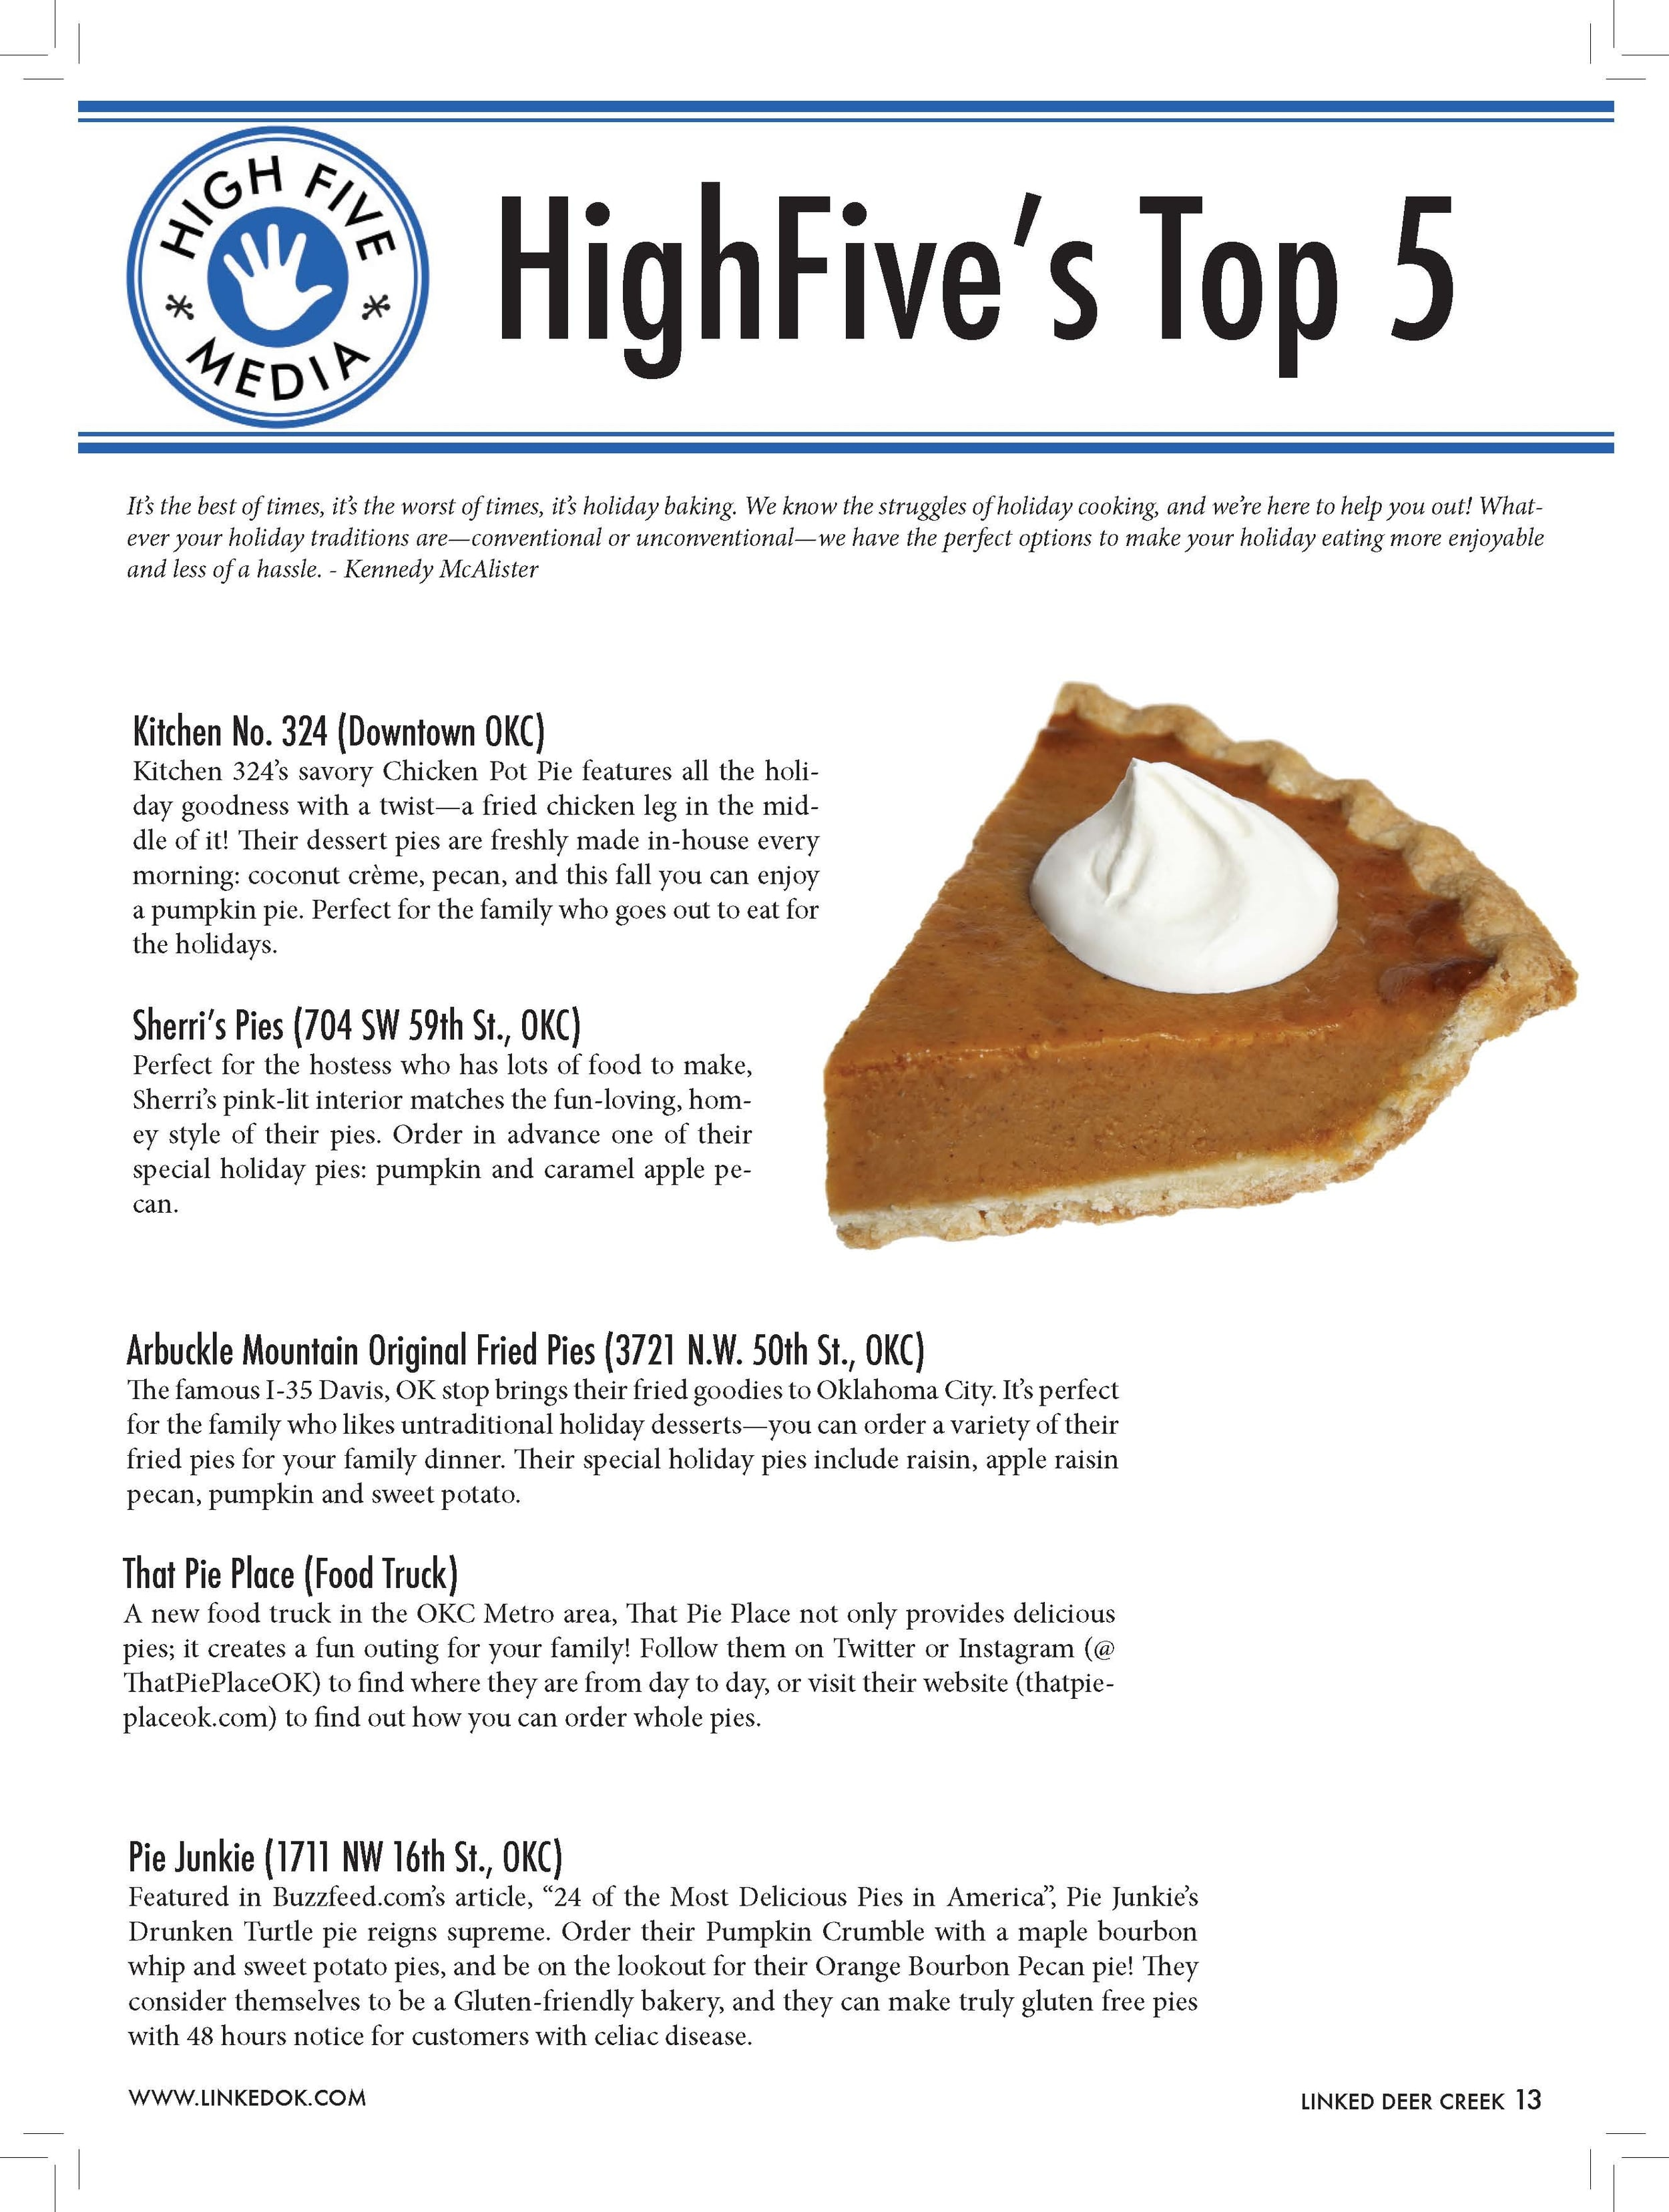 """HighFive's Top 5  It's the best of times, it's the worst of times, it's holiday baking. We know the struggles of holiday cooking, and we're here to help you out! Whatever  your holiday traditions are—conventional or unconventional—we have the perfect options to make your holiday eating more enjoyable  and less of a hassle. - Kennedy McAlister  Kitchen No. 324 (Downtown OKC)  Kitchen 324's savory Chicken Pot Pie features all the holiday  goodness with a twist—a fried chicken leg in the middle  of it! Their dessert pies are freshly made in-house every  morning: coconut crème, pecan, and this fall you can enjoy  a pumpkin pie. Perfect for the family who goes out to eat for  the holidays.  Sherri's Pies (704 SW 59th St., OKC)  Perfect for the hostess who has lots of food to make,  Sherri's pink-lit interior matches the fun-loving, homey  style of their pies. Order in advance one of their  special holiday pies: pumpkin and caramel apple pecan.  Arbuckle Mountain Original Fried Pies (3721 N.W. 50th St., OKC)  The famous I-35 Davis, OK stop brings their fried goodies to Oklahoma City. It's perfect  for the family who likes untraditional holiday desserts—you can order a variety of their  fried pies for your family dinner. Their special holiday pies include raisin, apple raisin  pecan, pumpkin and sweet potato.  Pie Junkie (1711 NW 16th St., OKC)  Featured in Buzzfeed.com's article, """"24 of the Most Delicious Pies in America"""", Pie Junkie's  Drunken Turtle pie reigns supreme. Order their Pumpkin Crumble with a maple bourbon  whip and sweet potato pies, and be on the lookout for their Orange Bourbon Pecan pie! They  consider themselves to be a Gluten-friendly bakery, and they can make truly gluten free pies  with 48 hours notice for customers with celiac disease.  That Pie Place (Food Truck)  A new food truck in the OKC Metro area, That Pie Place not only provides delicious  pies; it creates a fun outing for your family! Follow them on Twitter or Instagram (@  ThatPiePlaceOK) t"""